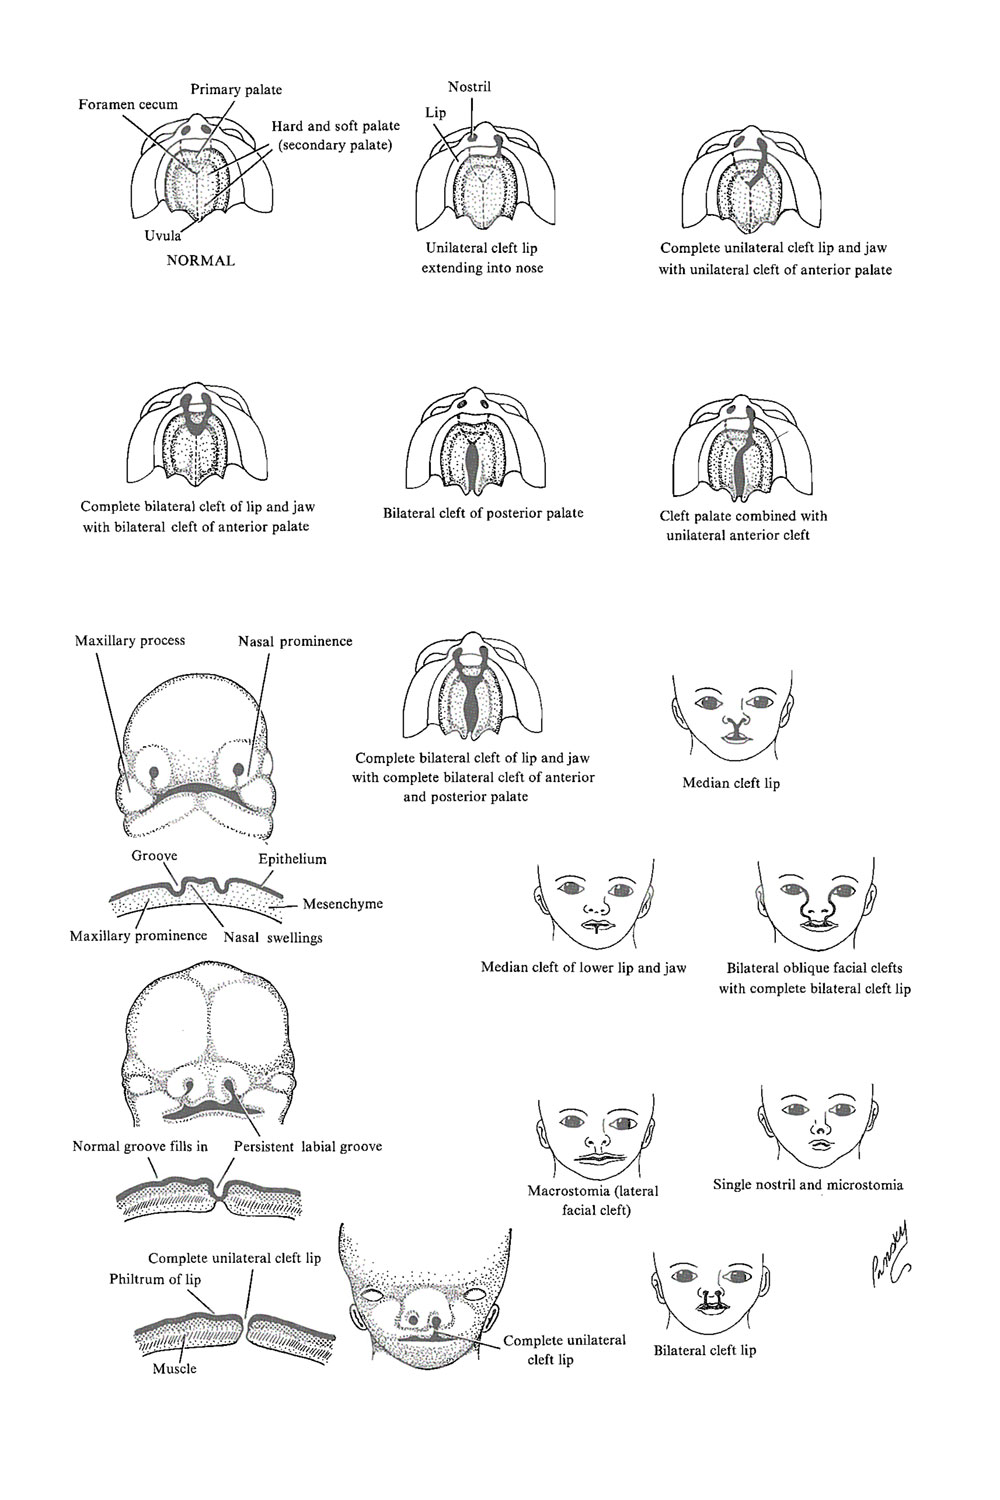 congenital malformations of  the lip and palate: image #1